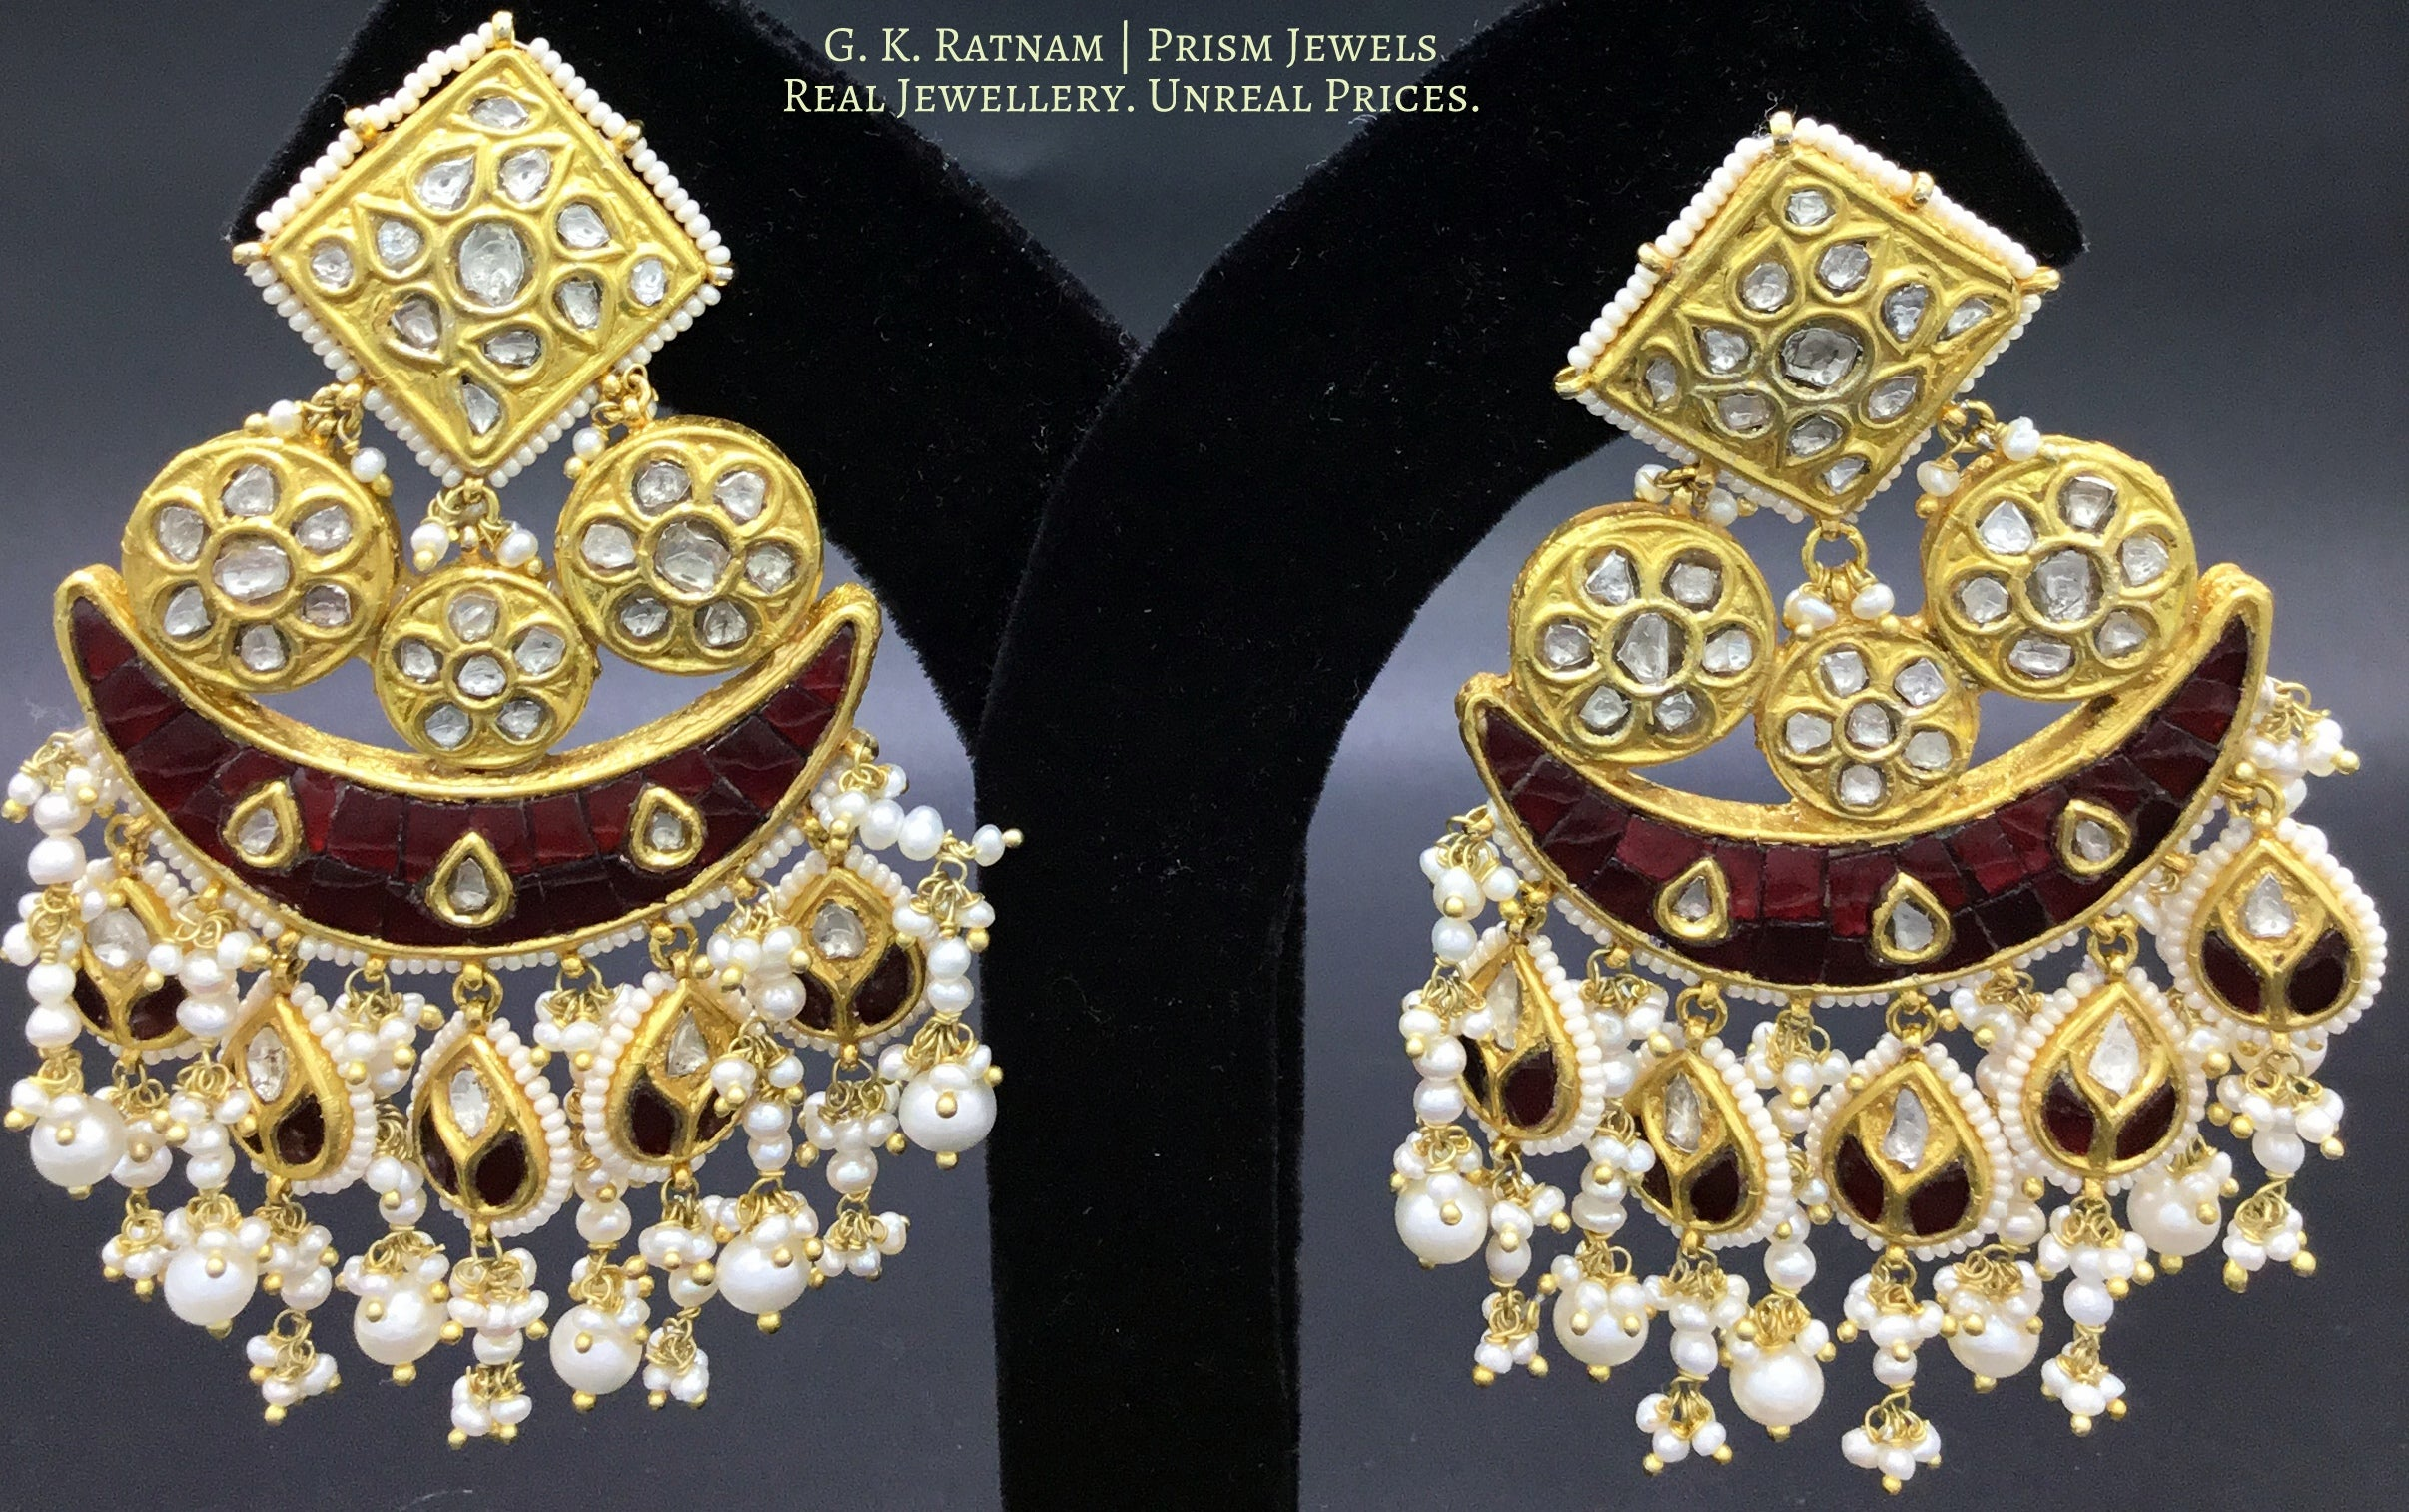 23k Gold and Diamond Polki Chandelier Earring Pair with ruby-red stones - gold diamond polki kundan meena jadau jewellery